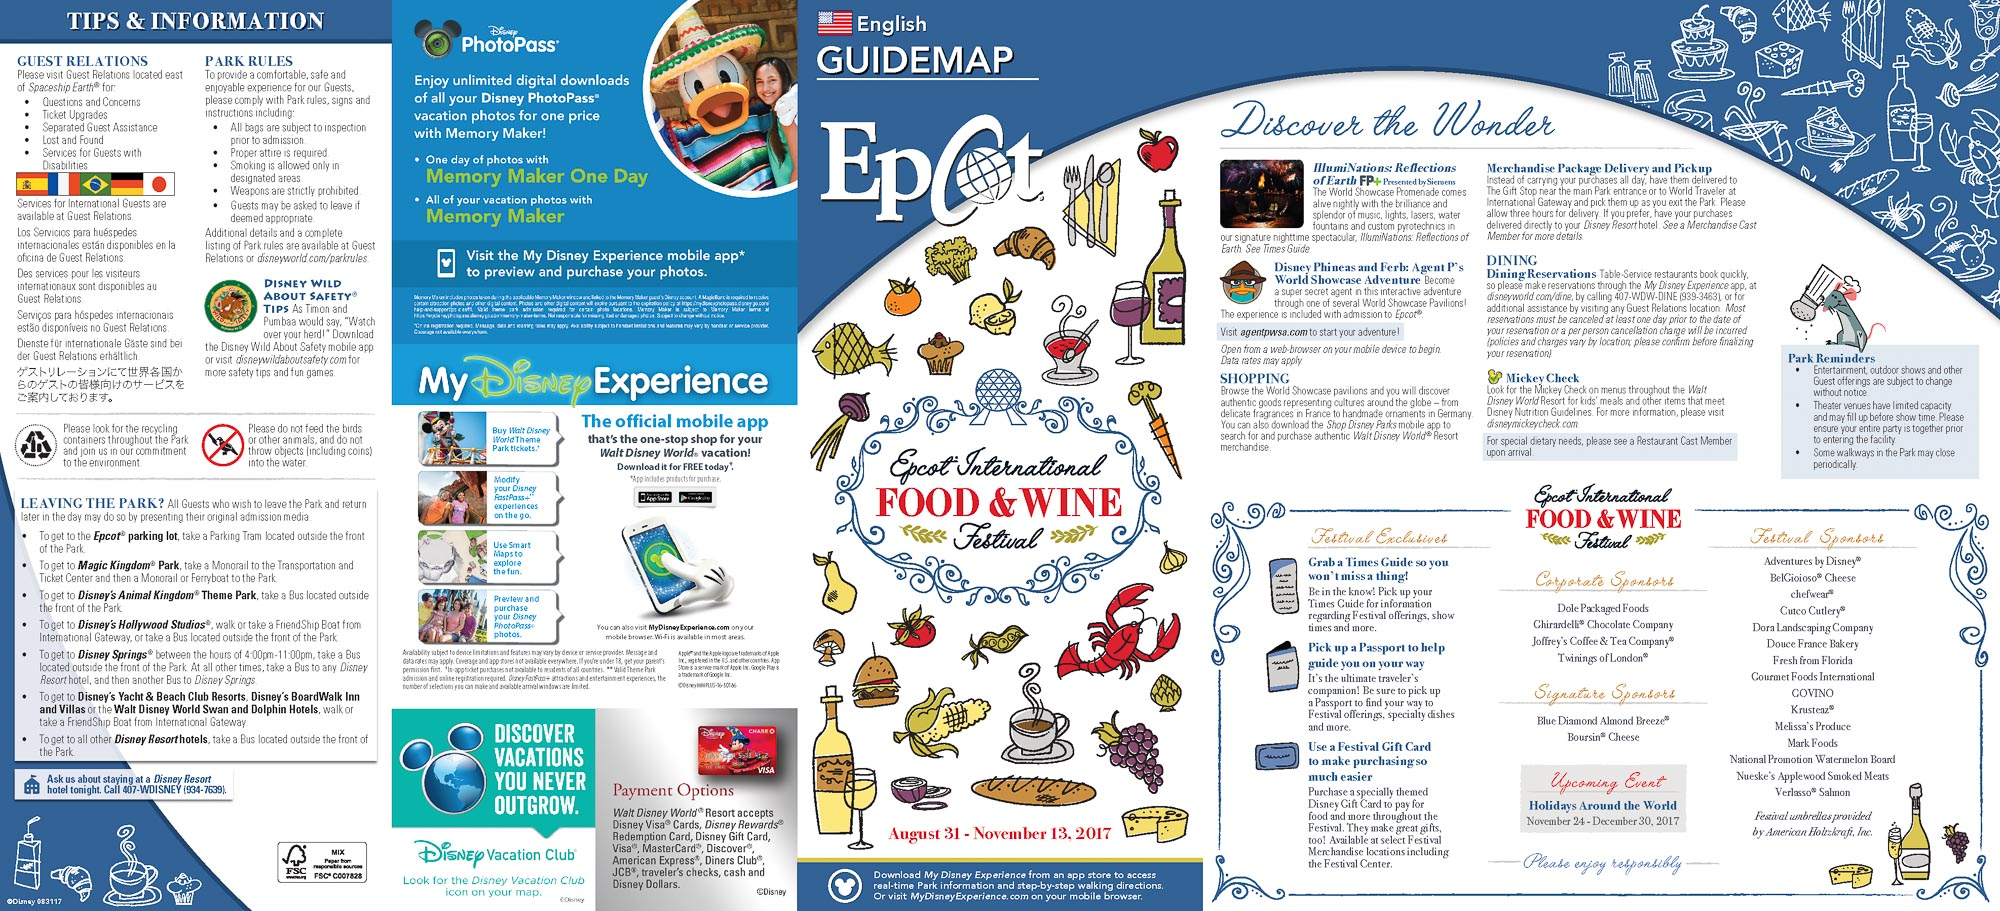 About Epcot Food And Wine Festival